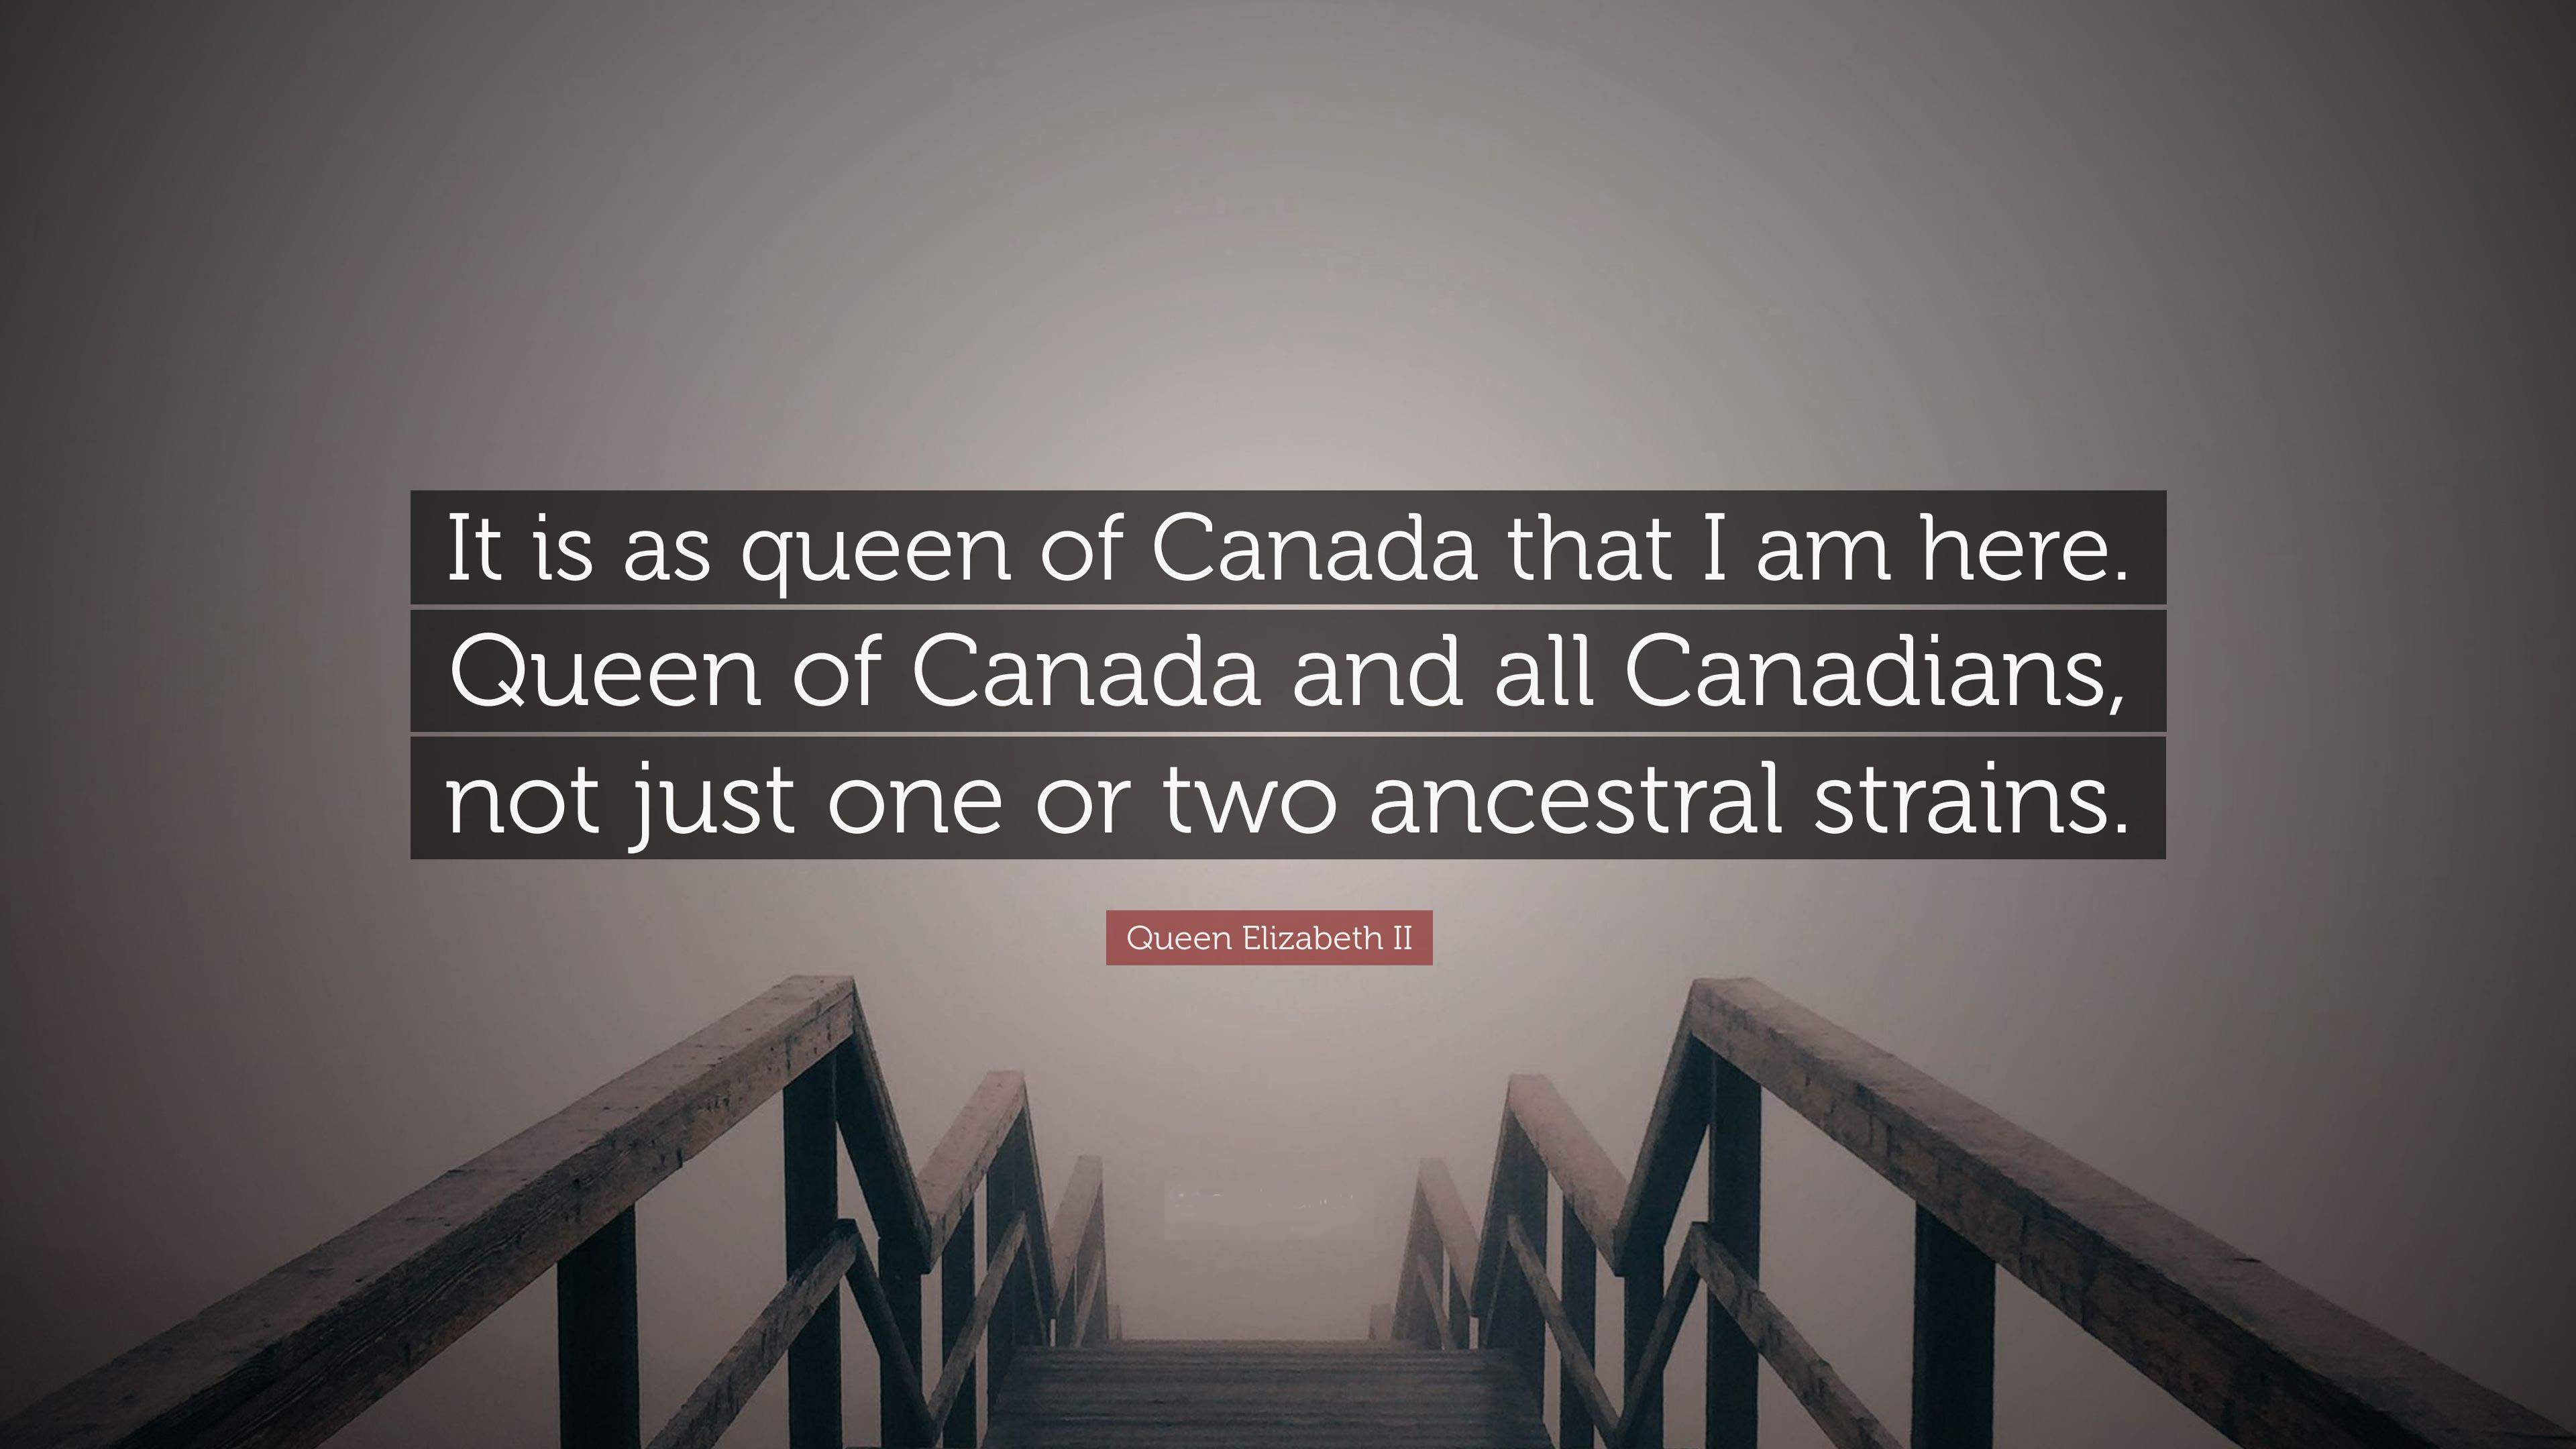 4957179-Queen-Elizabeth-II-Quote-It-is-as-queen-of-Canada-that-I-am-here